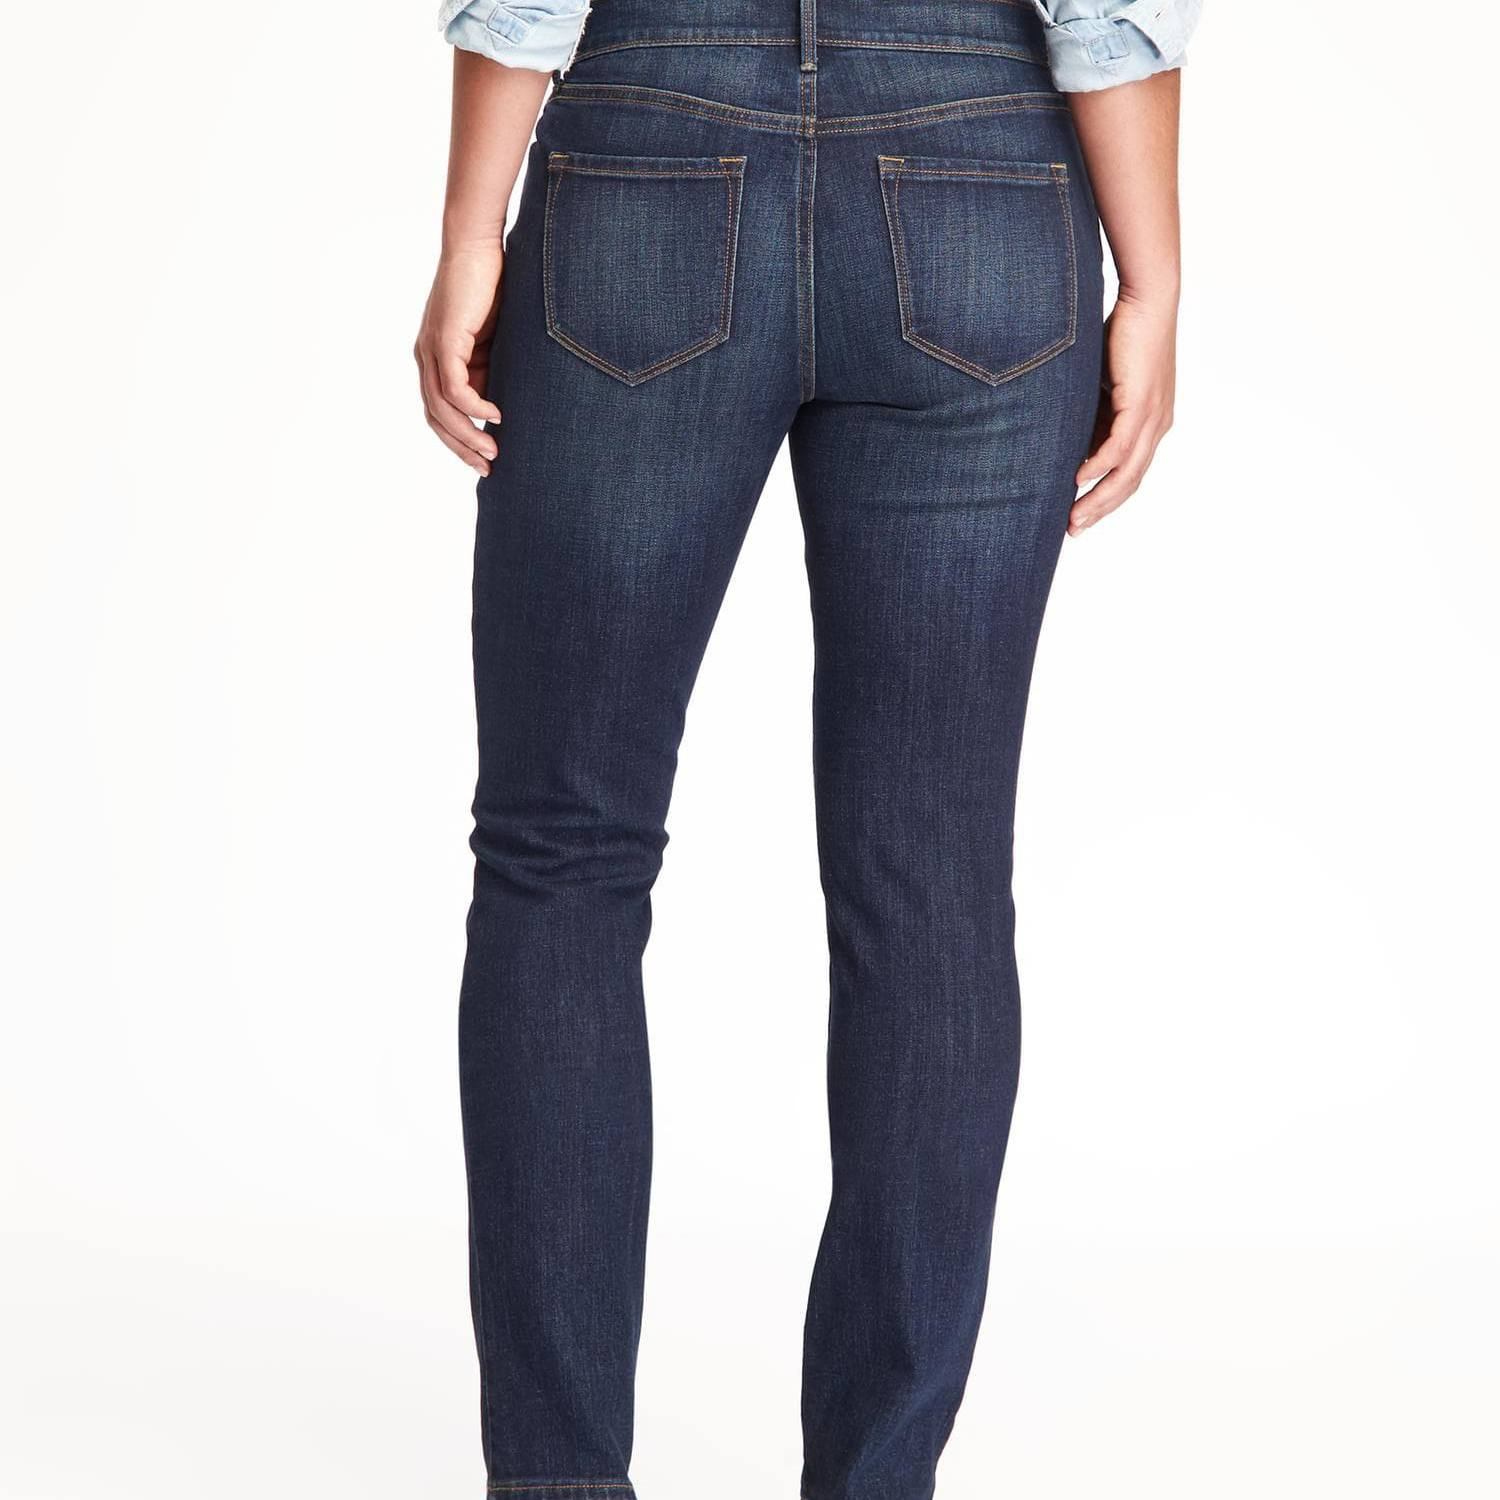 93c1cdd777663e How to Shop for Jeans That Make Your Butt Look Good